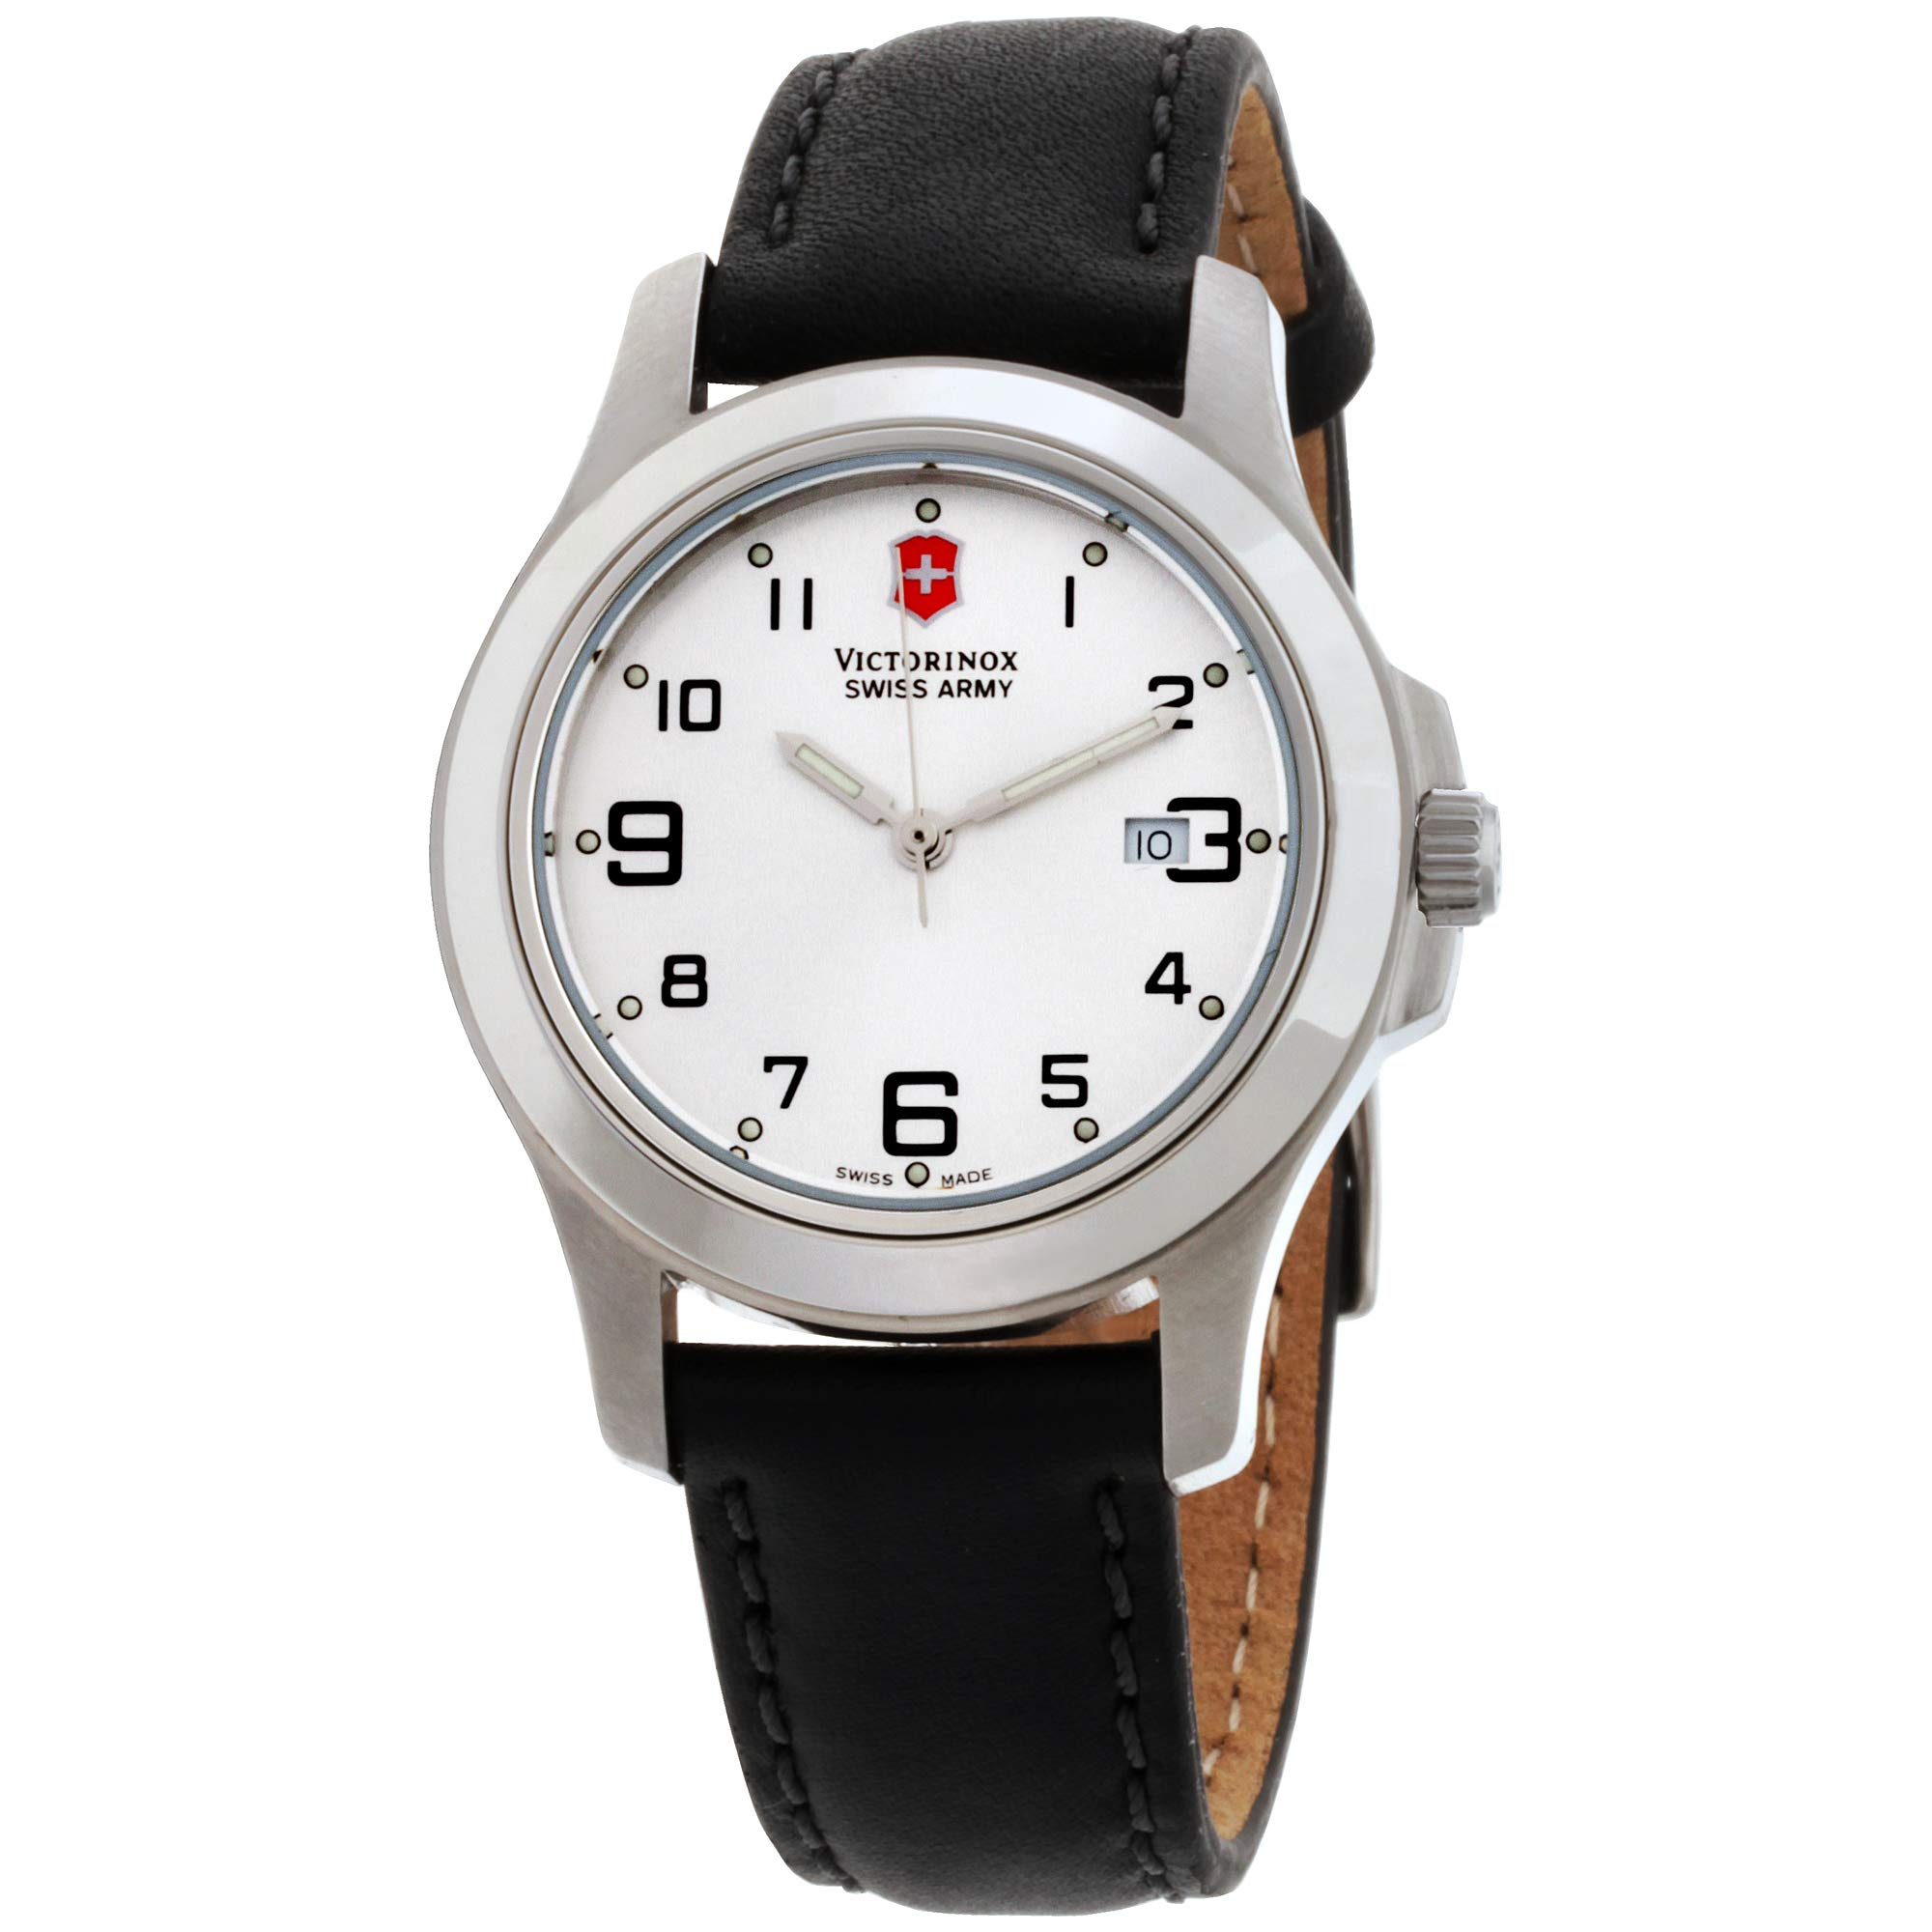 Victorinox Swiss Army 241388, Womens Watch Garrison, Silver Dial,Black Leather Strap,Mothers Day Gift